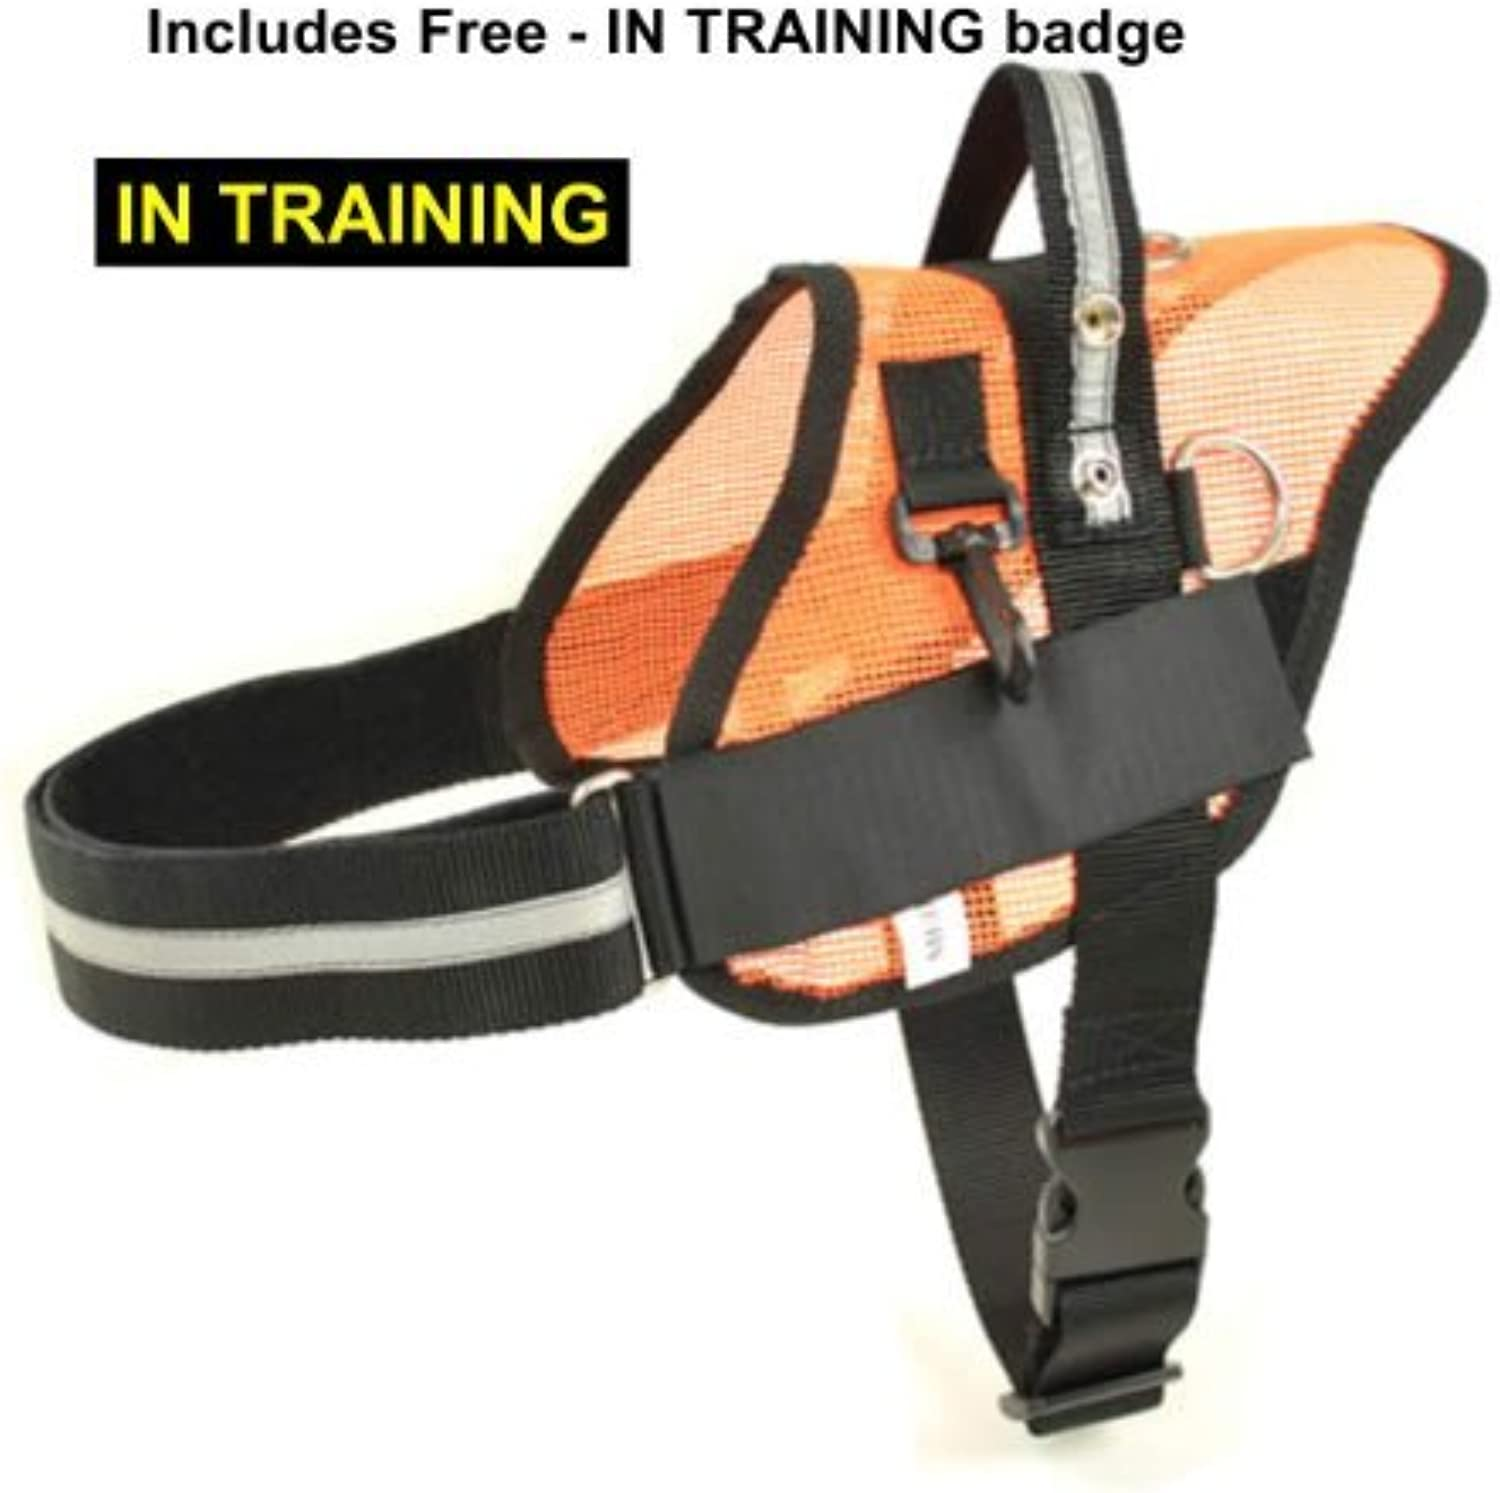 Light weight Mesh Service and SAR Dog Harness W Free IN TRAINING Badge (Medium)